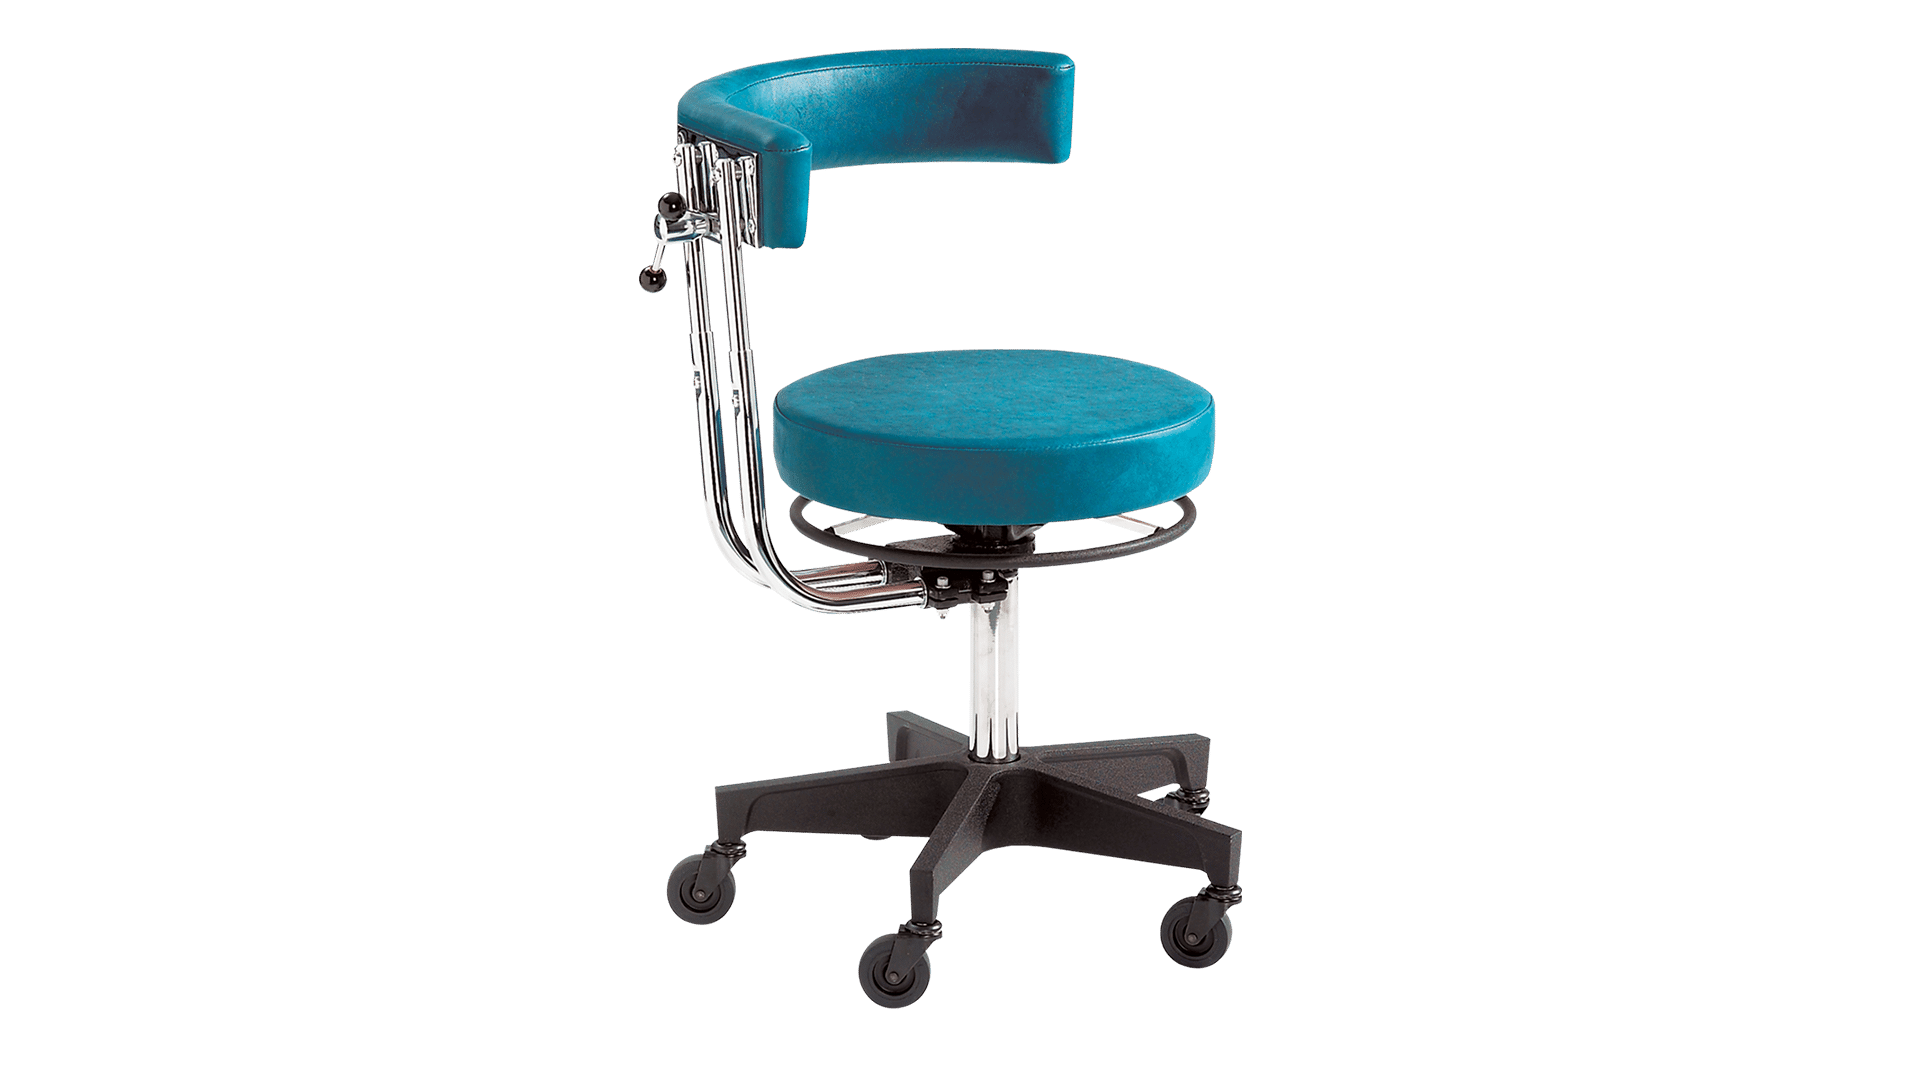 Reliance 5356 Surgical Stool Ent Supplies